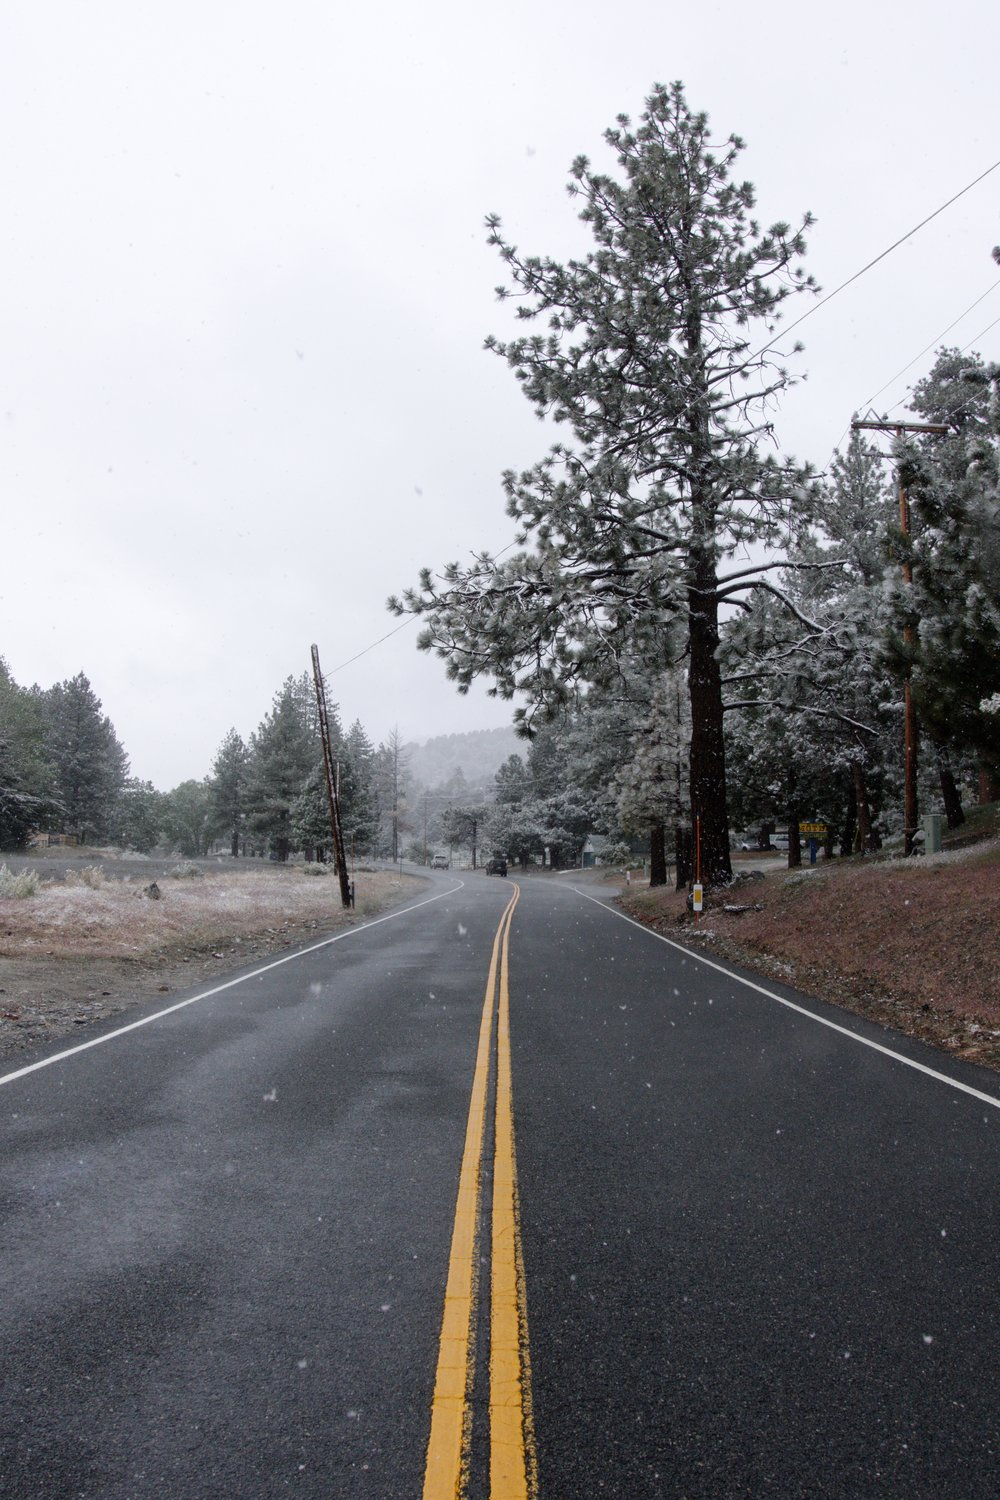 The road leading out of Wrightwood.